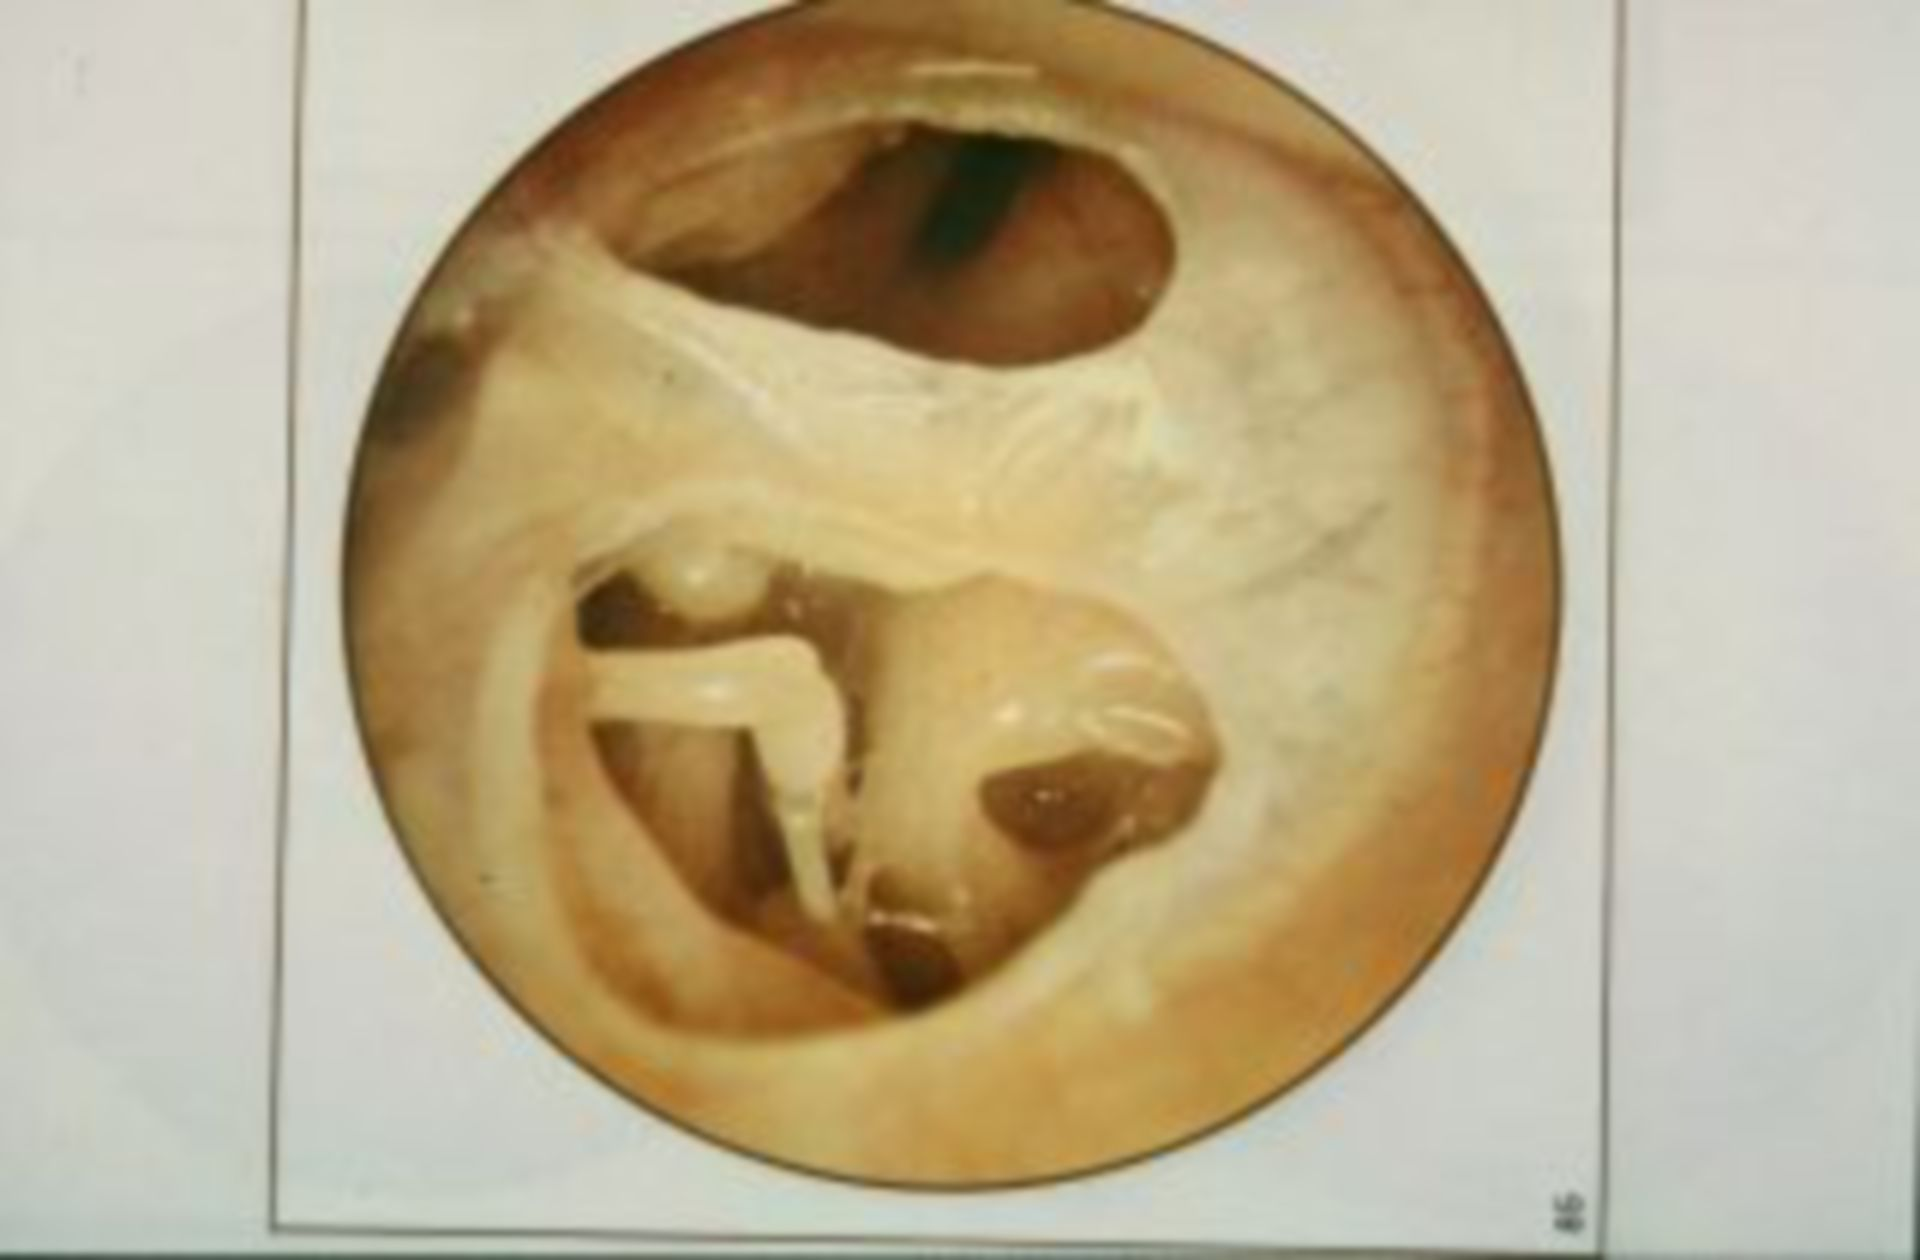 Persisting (double) lesion in the ear drum